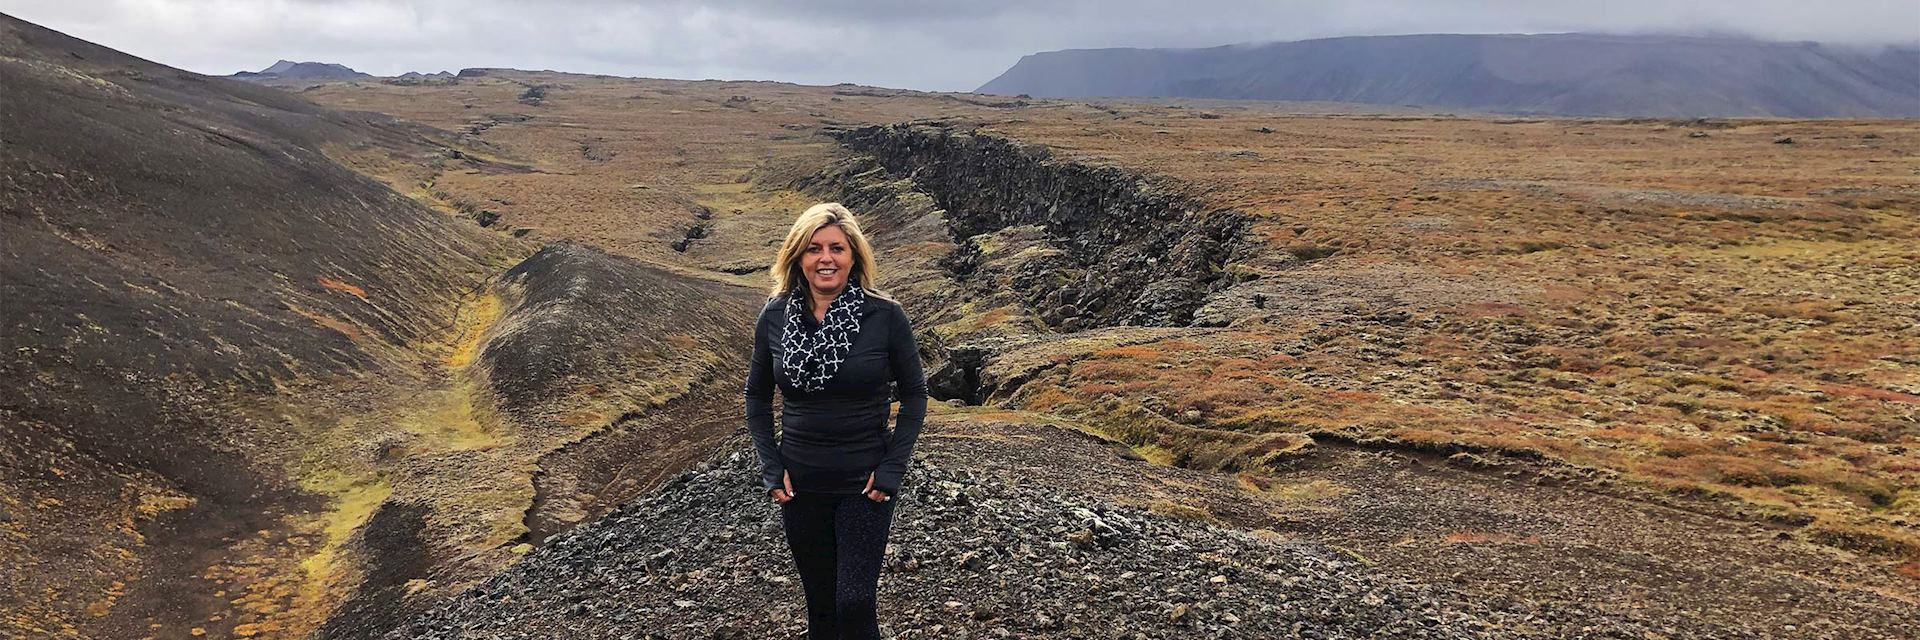 Laura visiting the lava fields, north Iceland